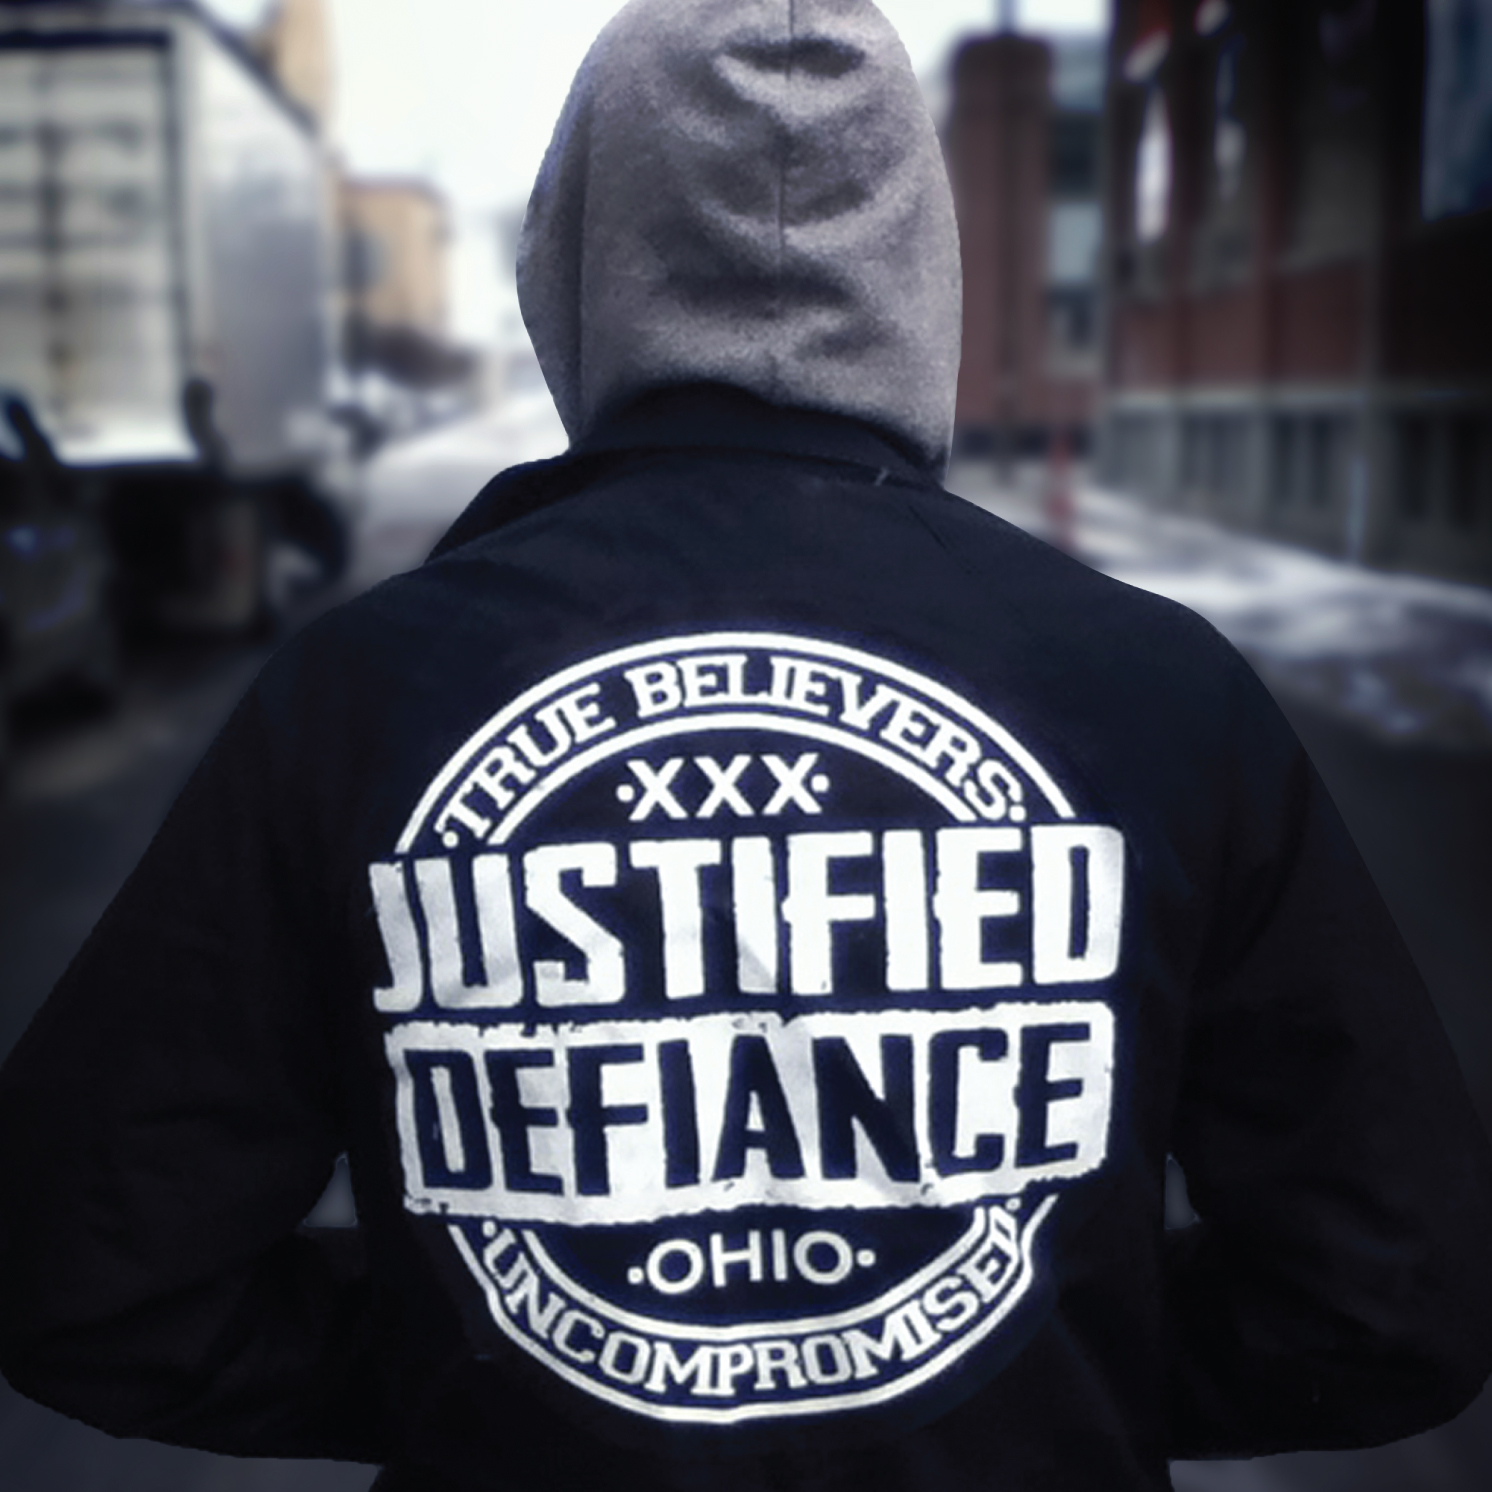 Justified Defiance